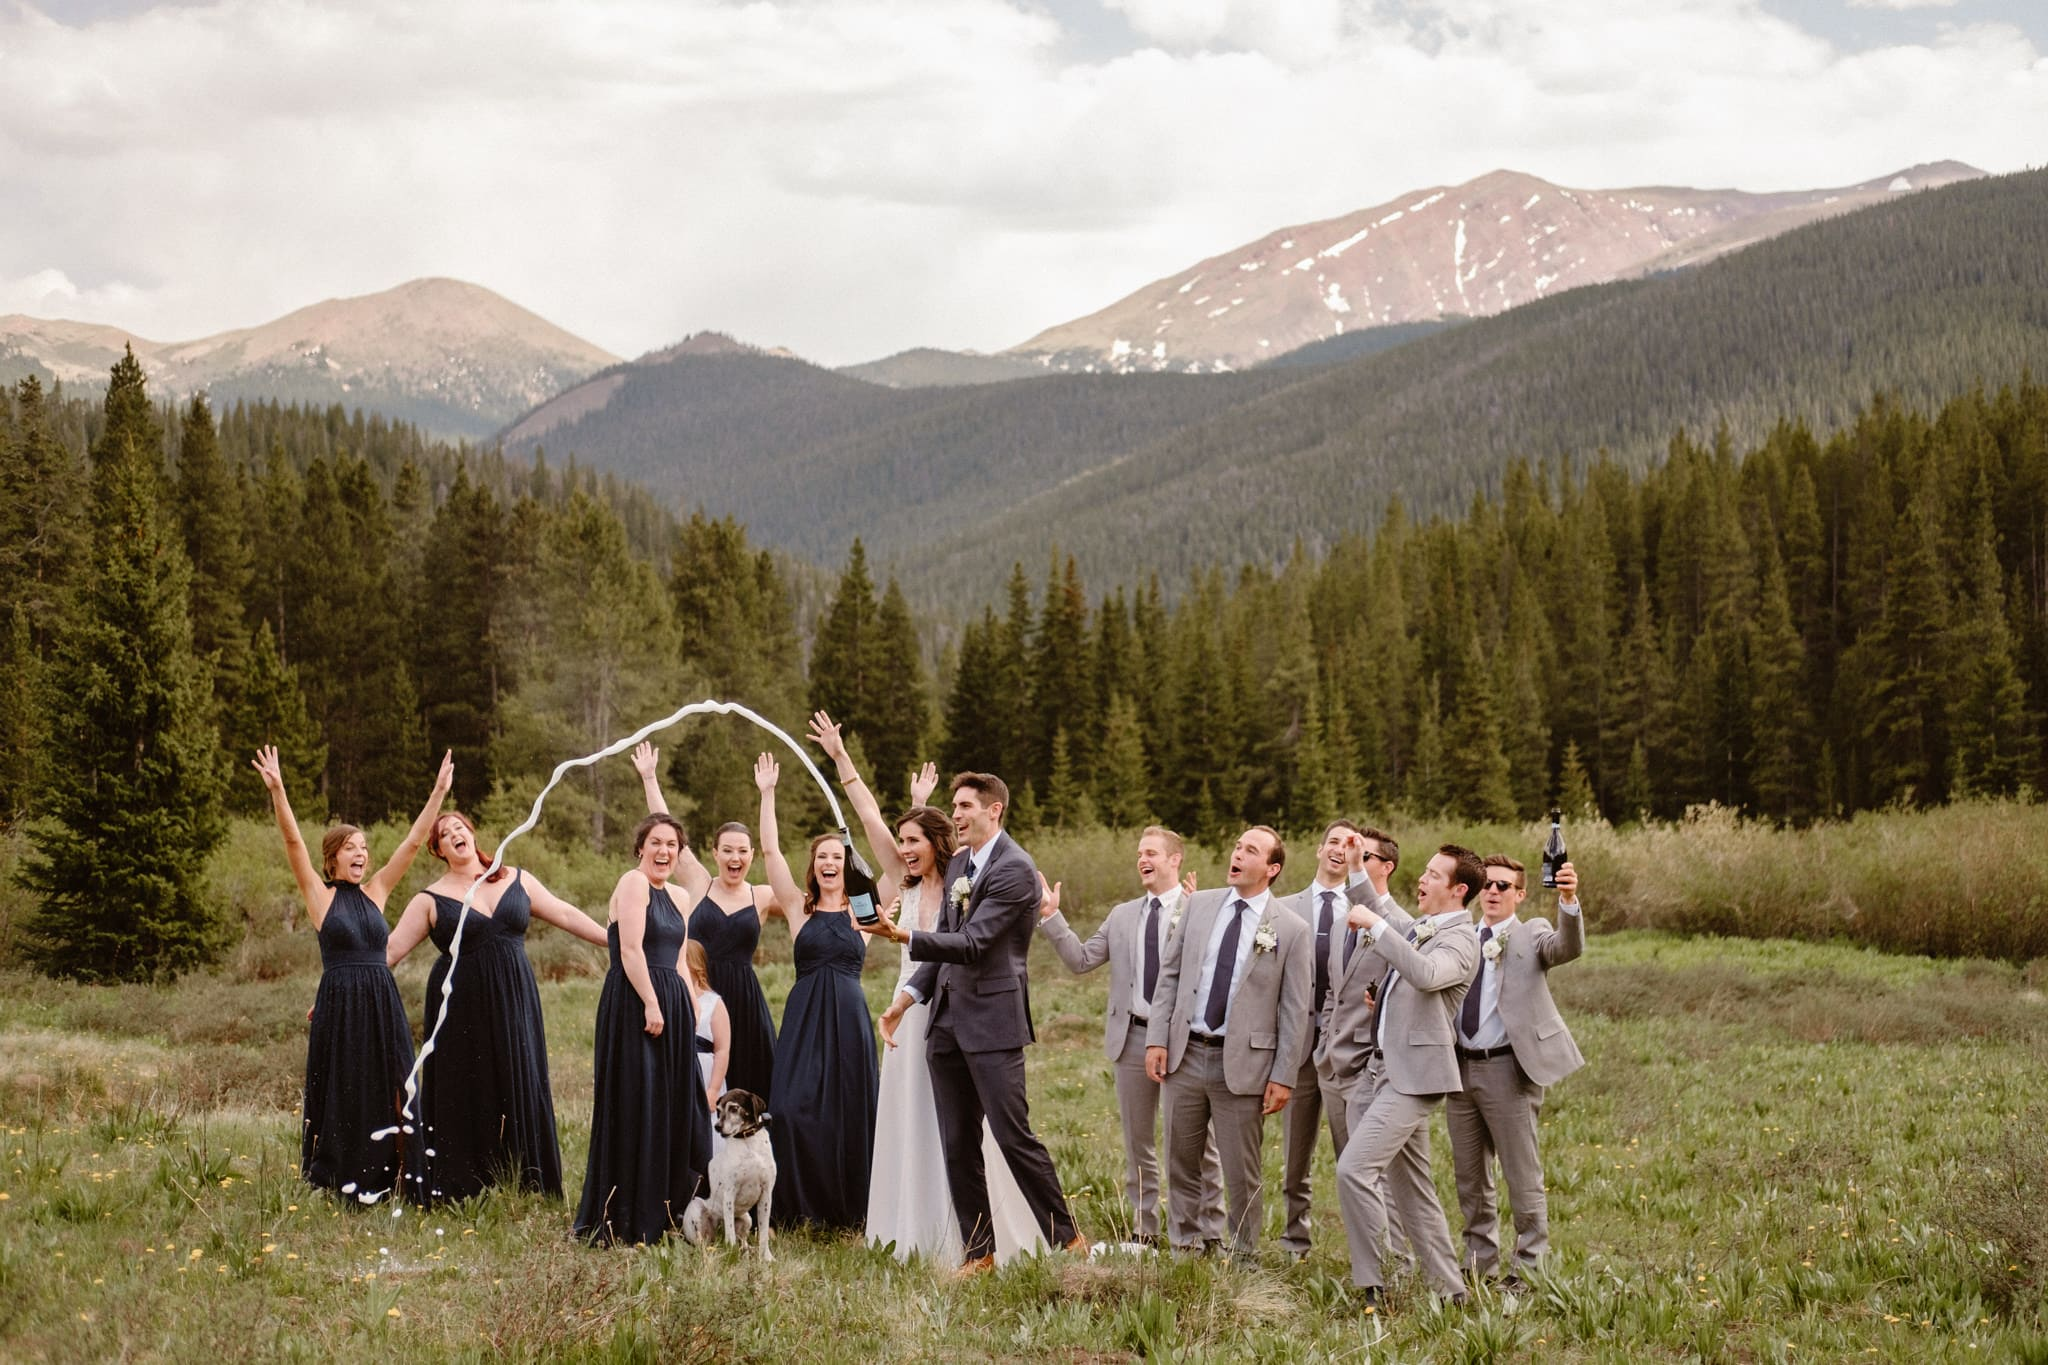 Wedding party portraits at Boreas Pass, wedding party popping champagne bottle, Breckenridge wedding photographer